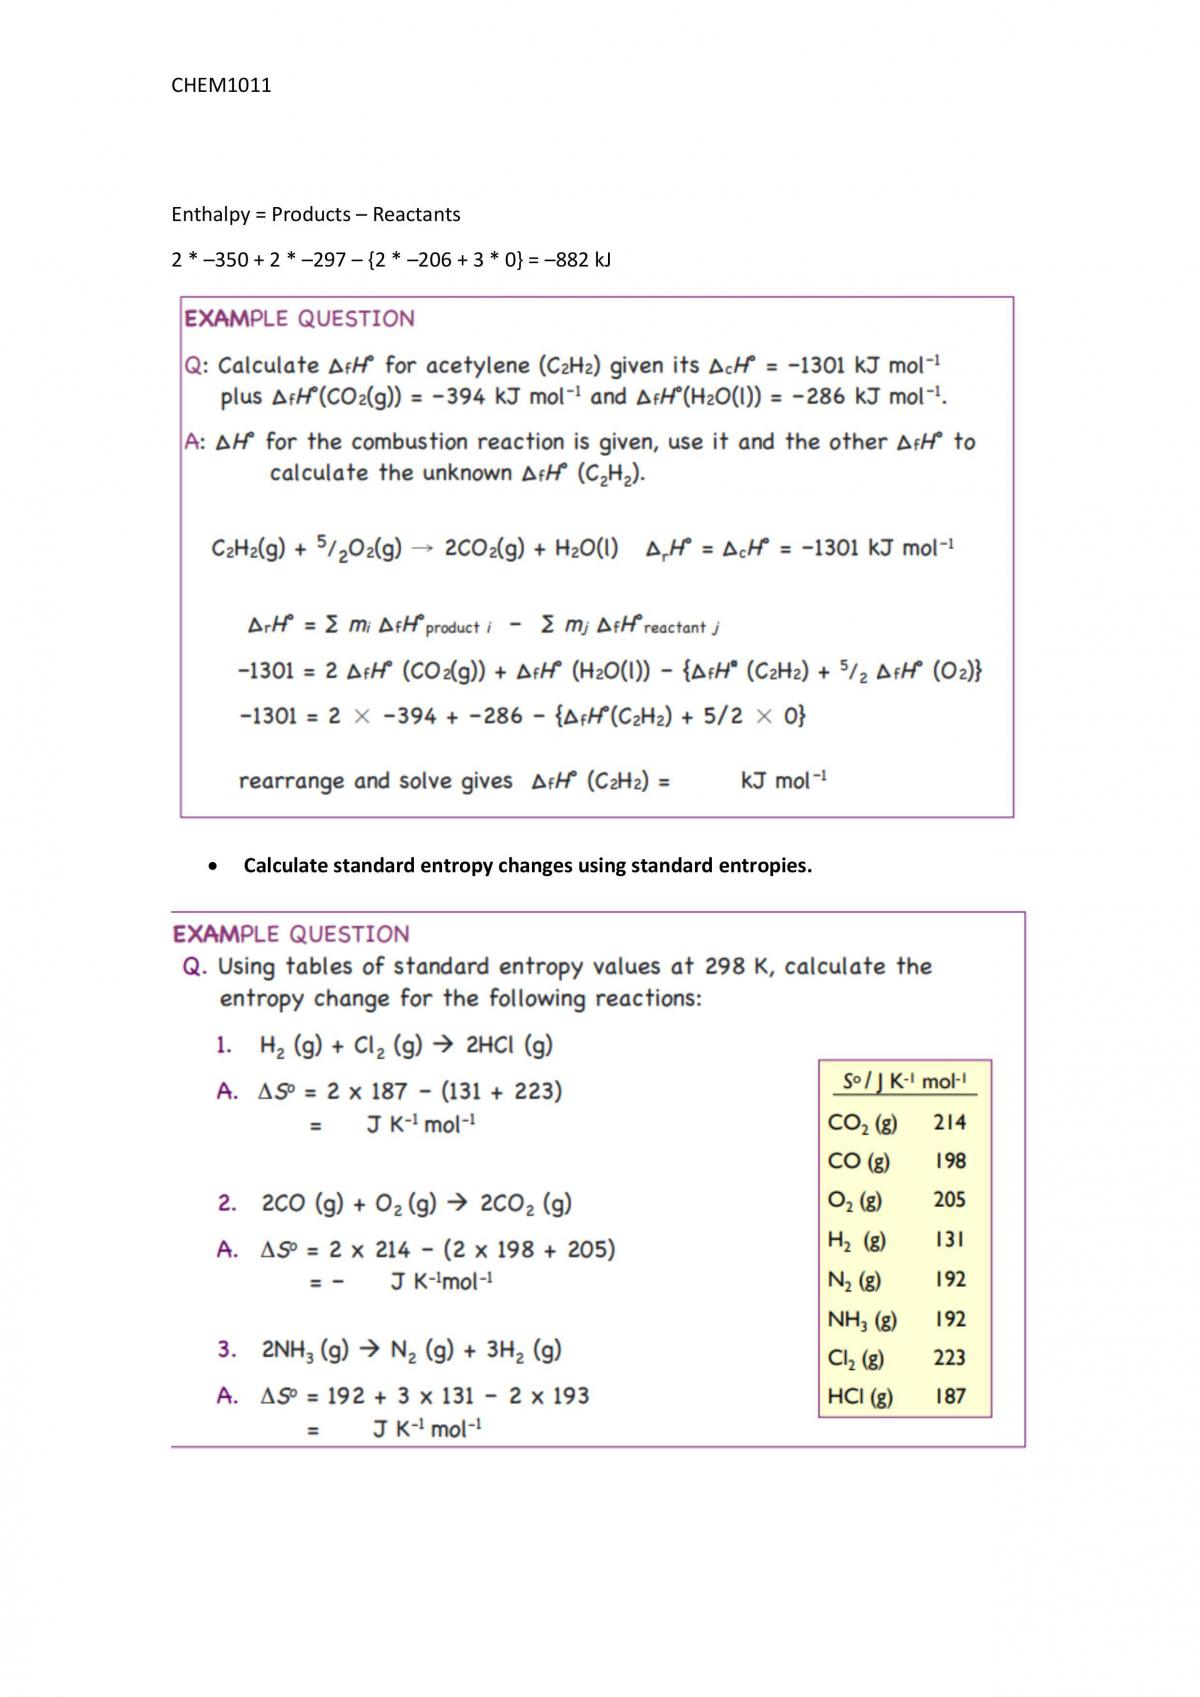 CHEM1011 A Fundamentals of Chemistry Complete Notes - Page 37